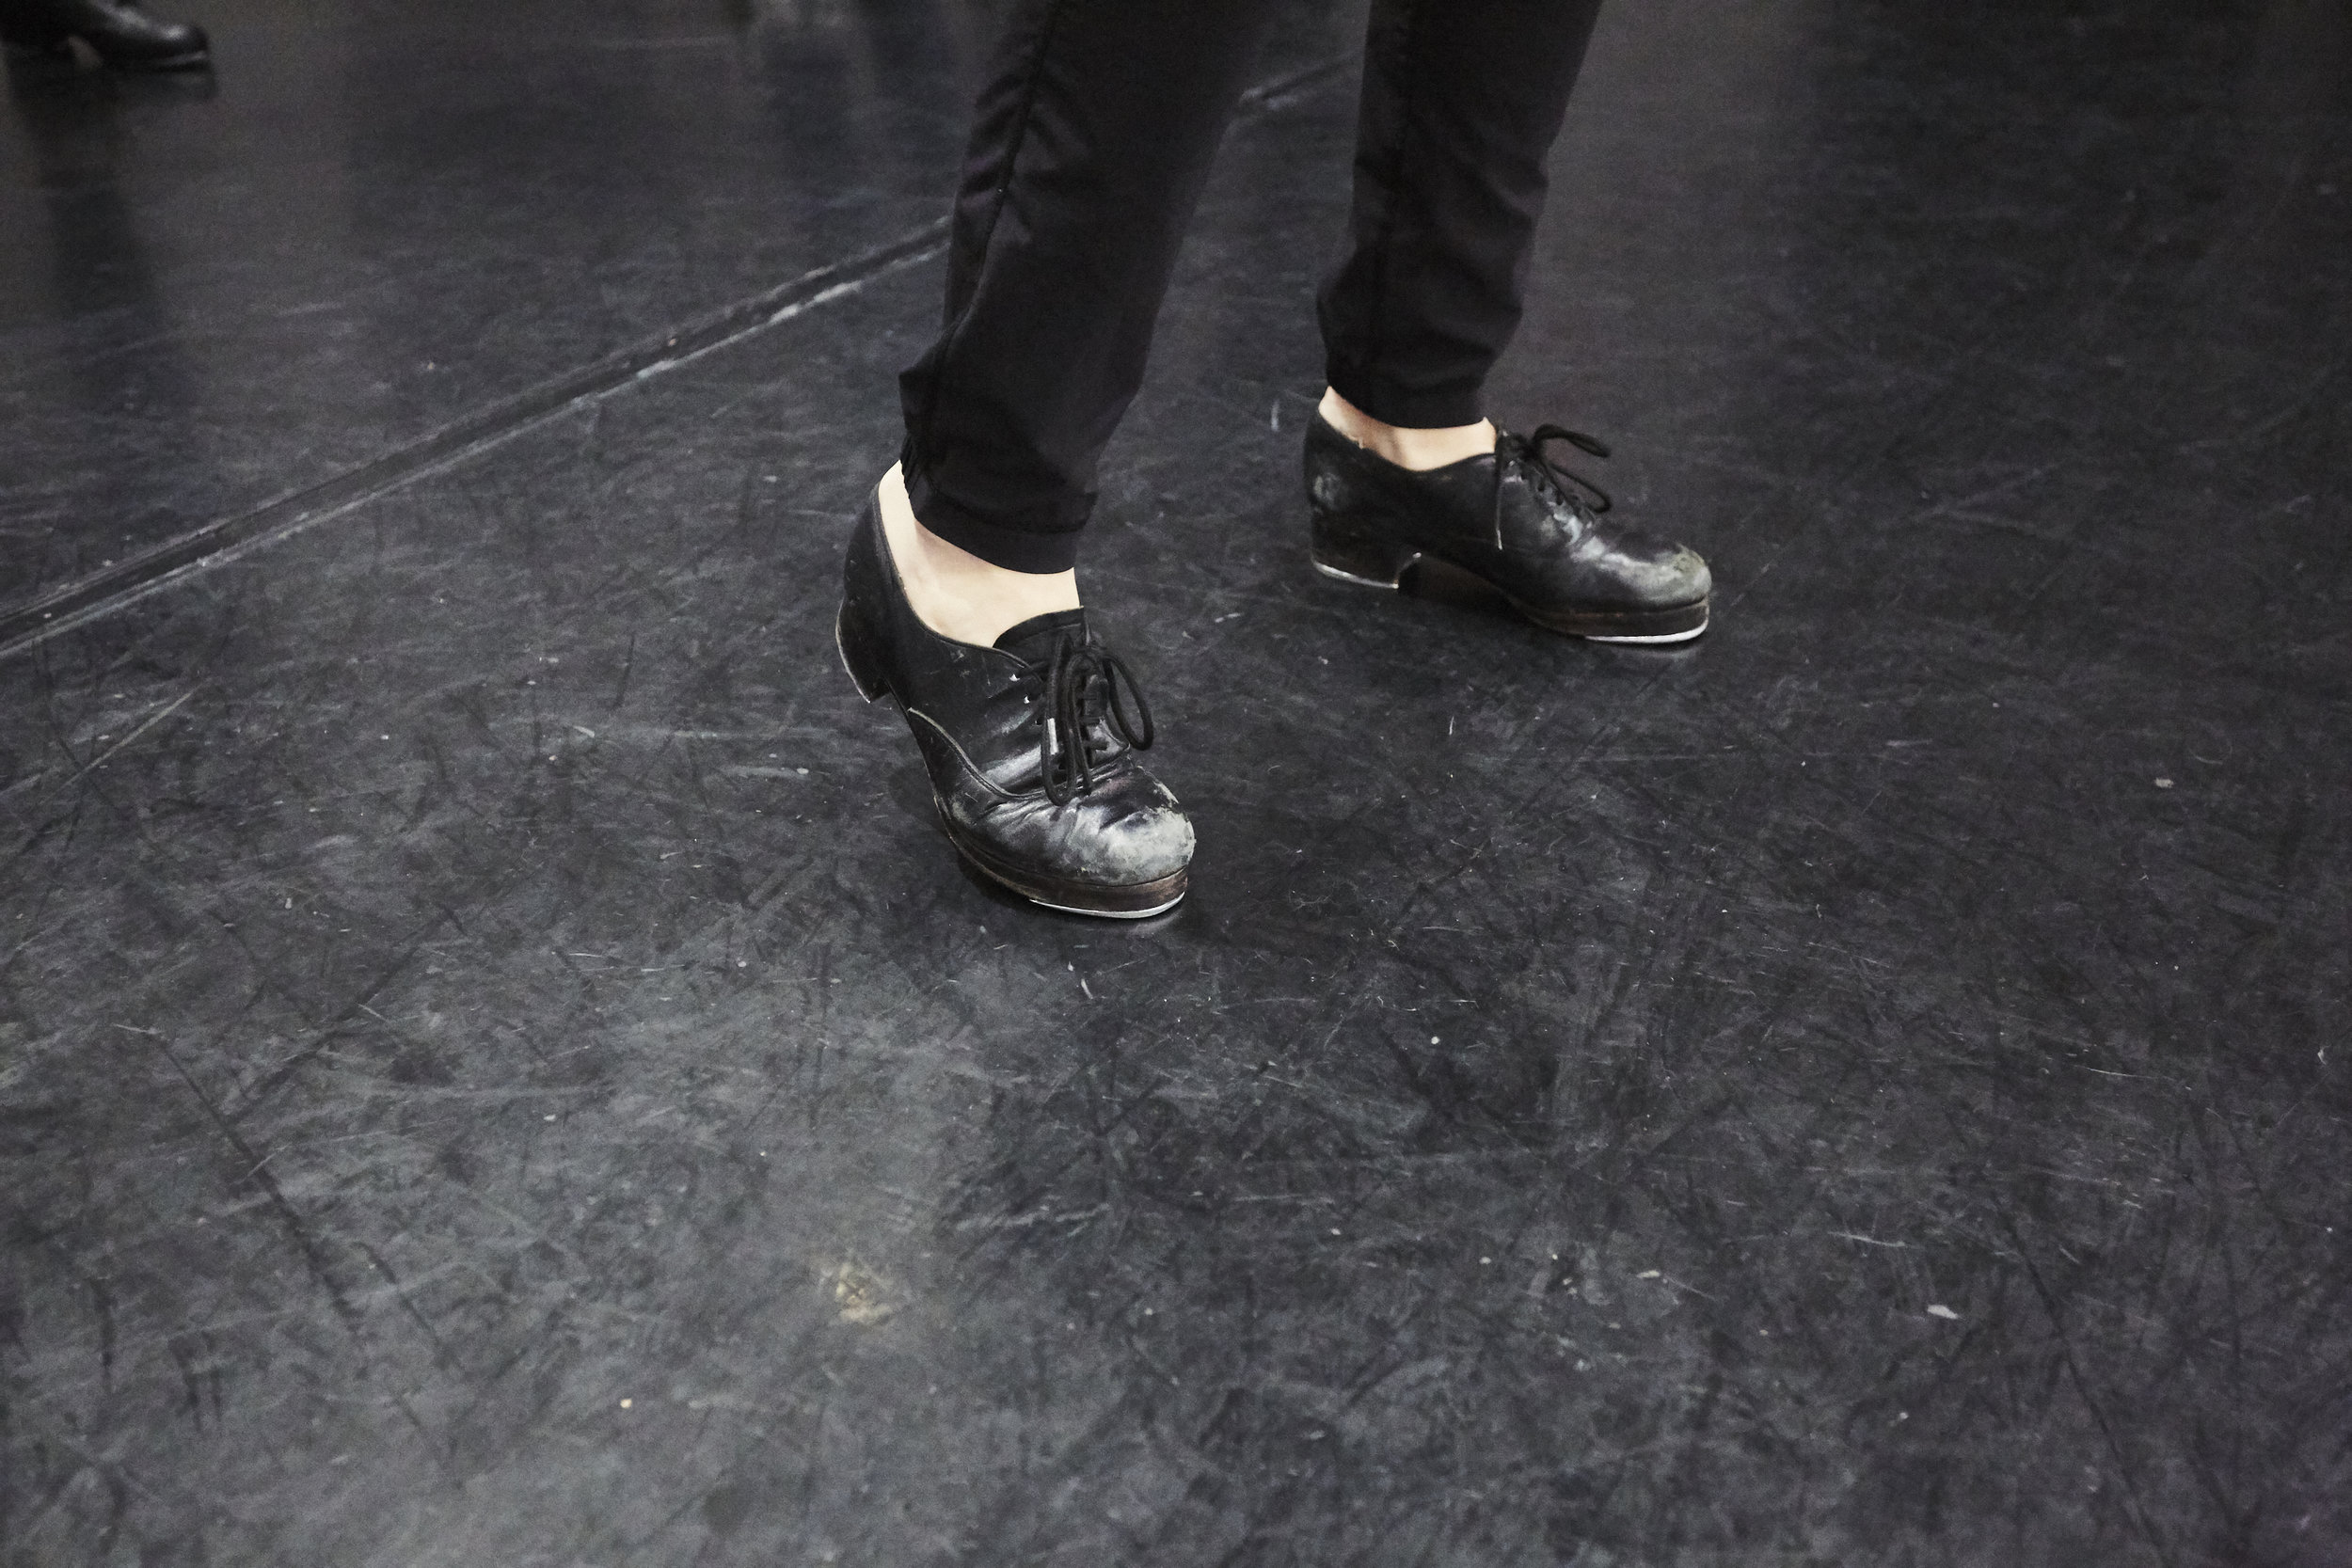 TAP - Tap dance is a rhythmic style of dance combined with Jazz technique. The tap shoes are used as percussive instruments to create sounds while hitting the floor. The class emphasis is on musicality, rhythm, coordination, style and technique.